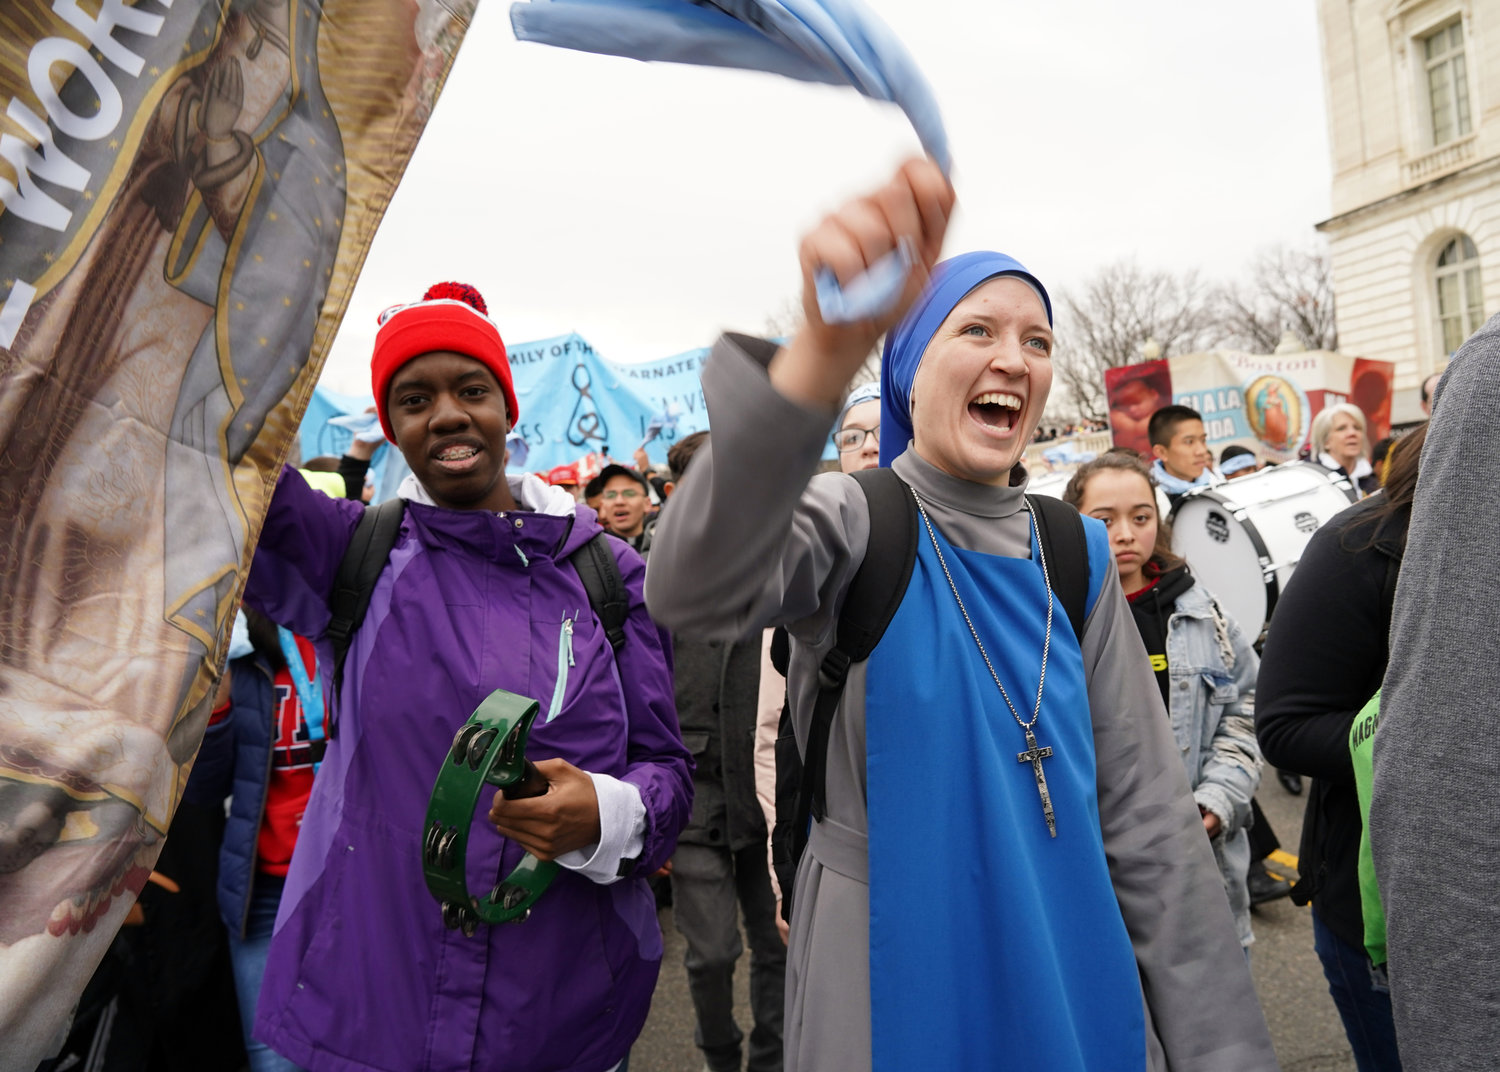 A religious sister sings and waves a cloth while participating in the 47th annual March for Life in Washington Jan. 24, 2020.